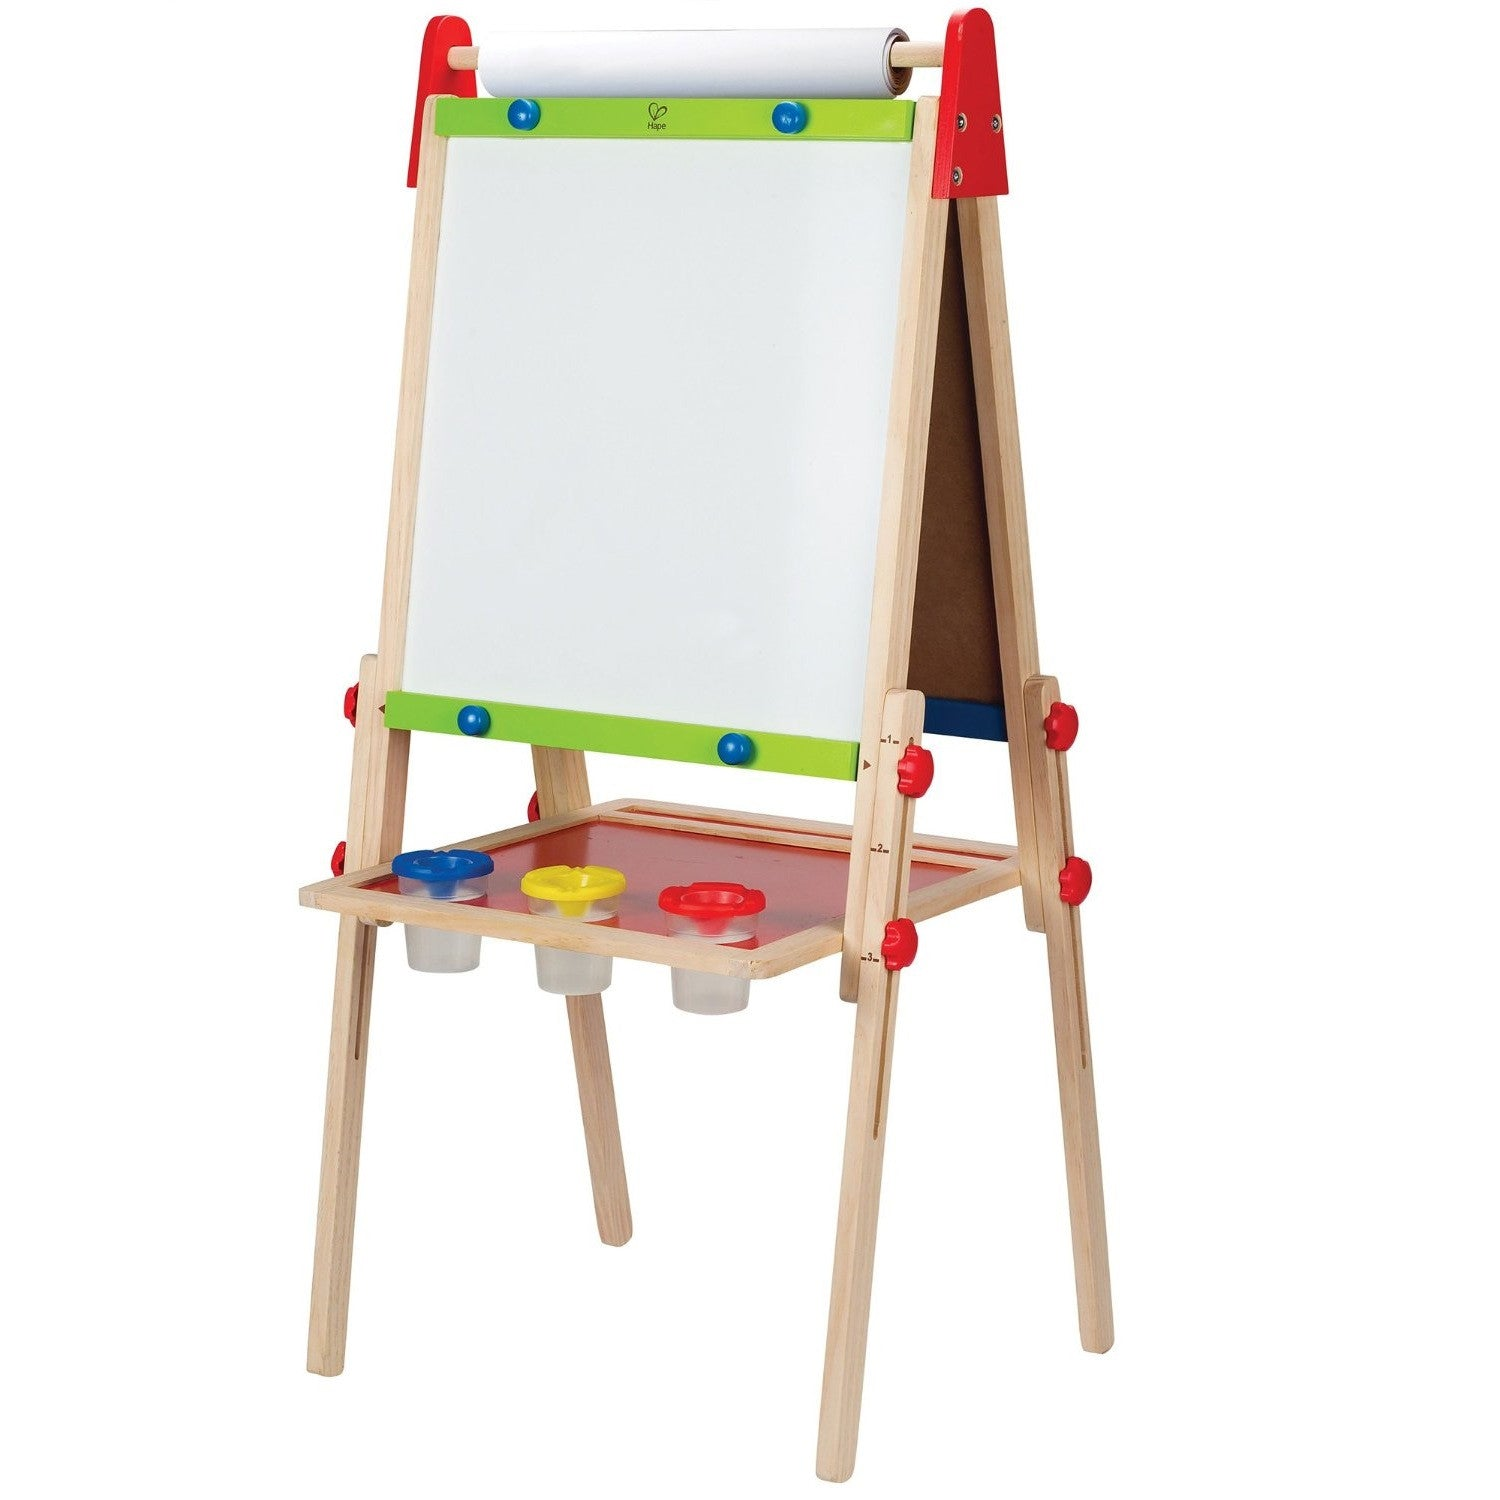 Hape All in 1 Standing Easel - Toybox Toy Jungle